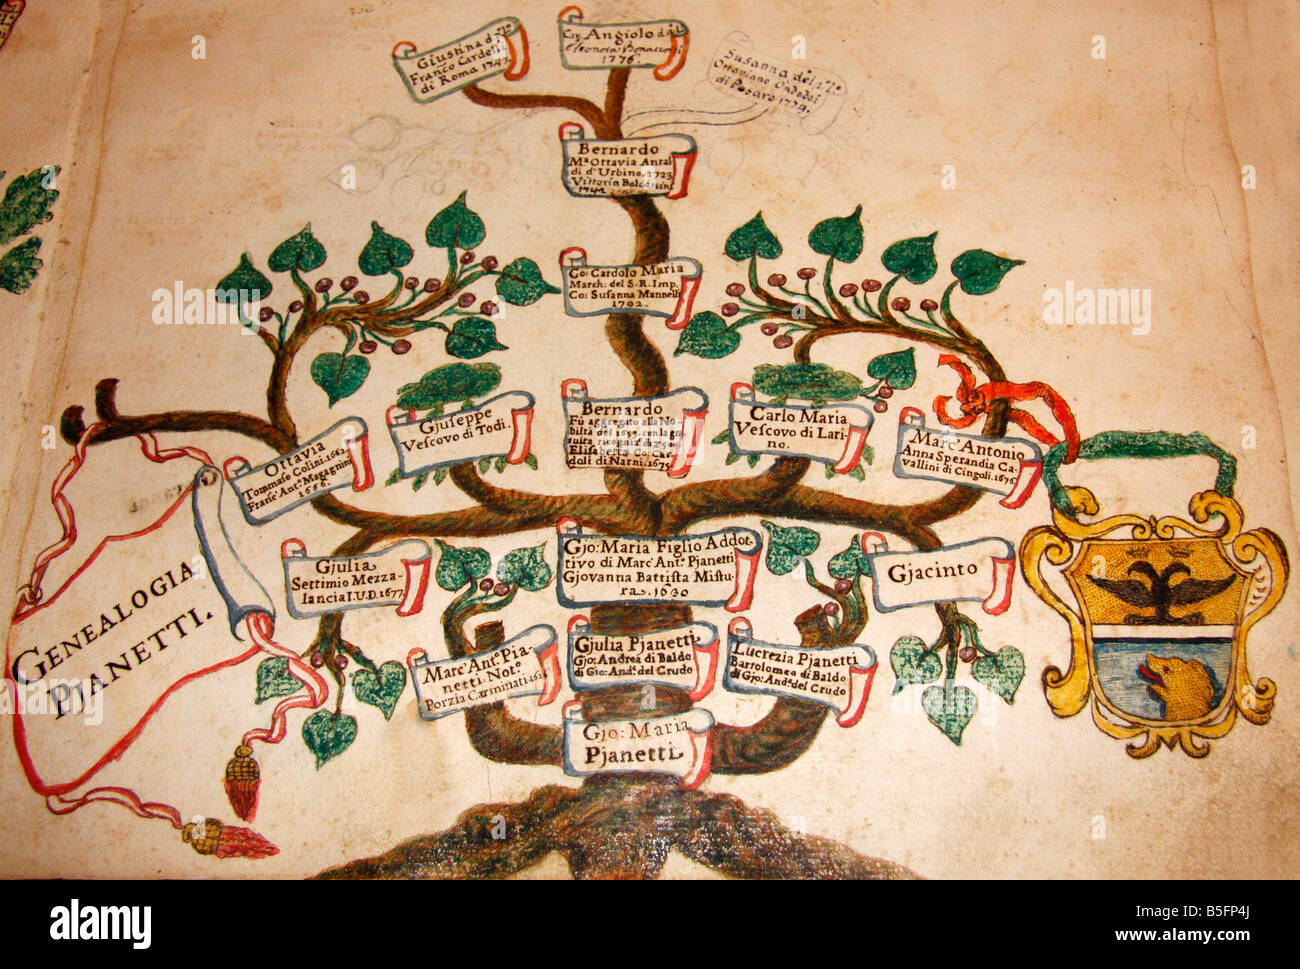 In the famous historic library in Jesi,Le Marche,Italy, the family tree of the Pianetti family of the city - Stock Image